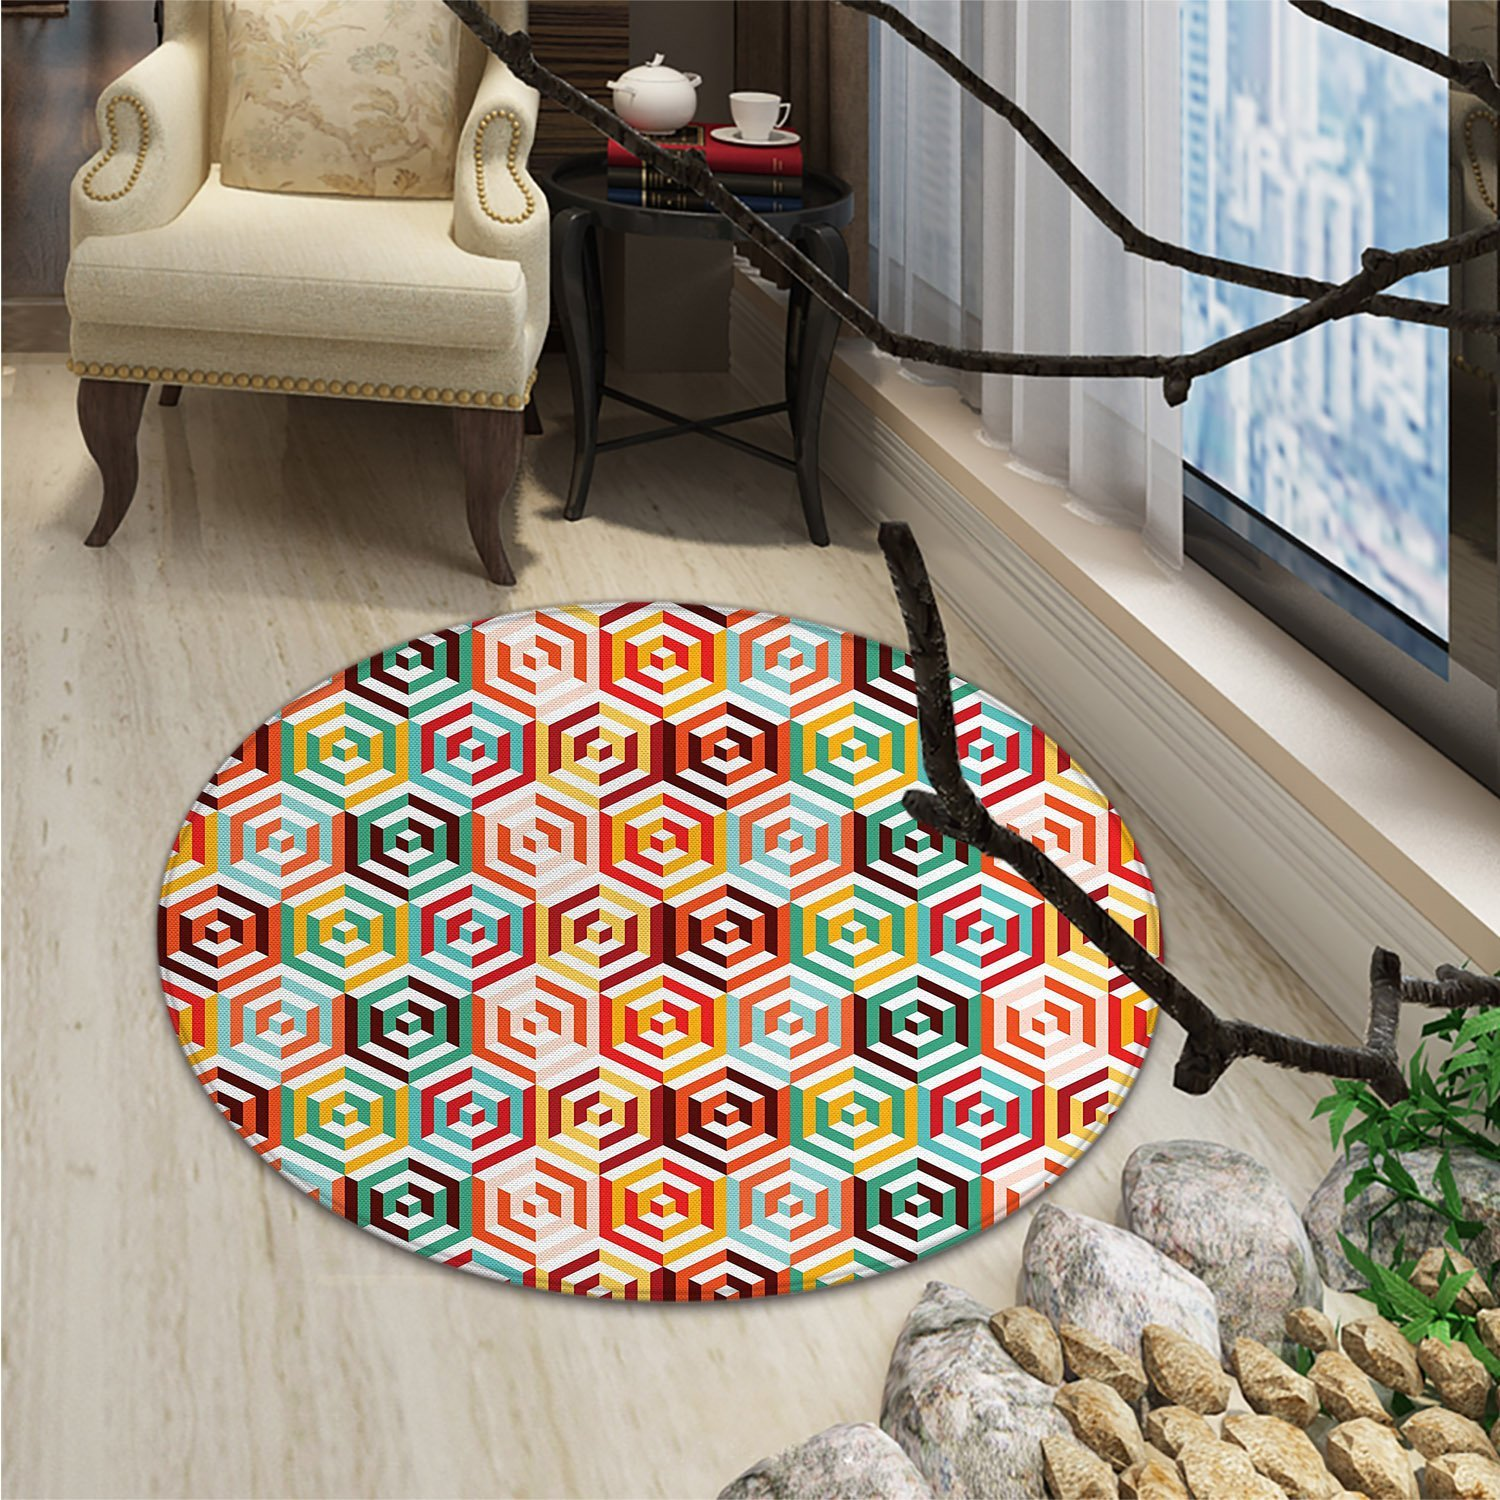 Geometric Round Rug Kid Carpet